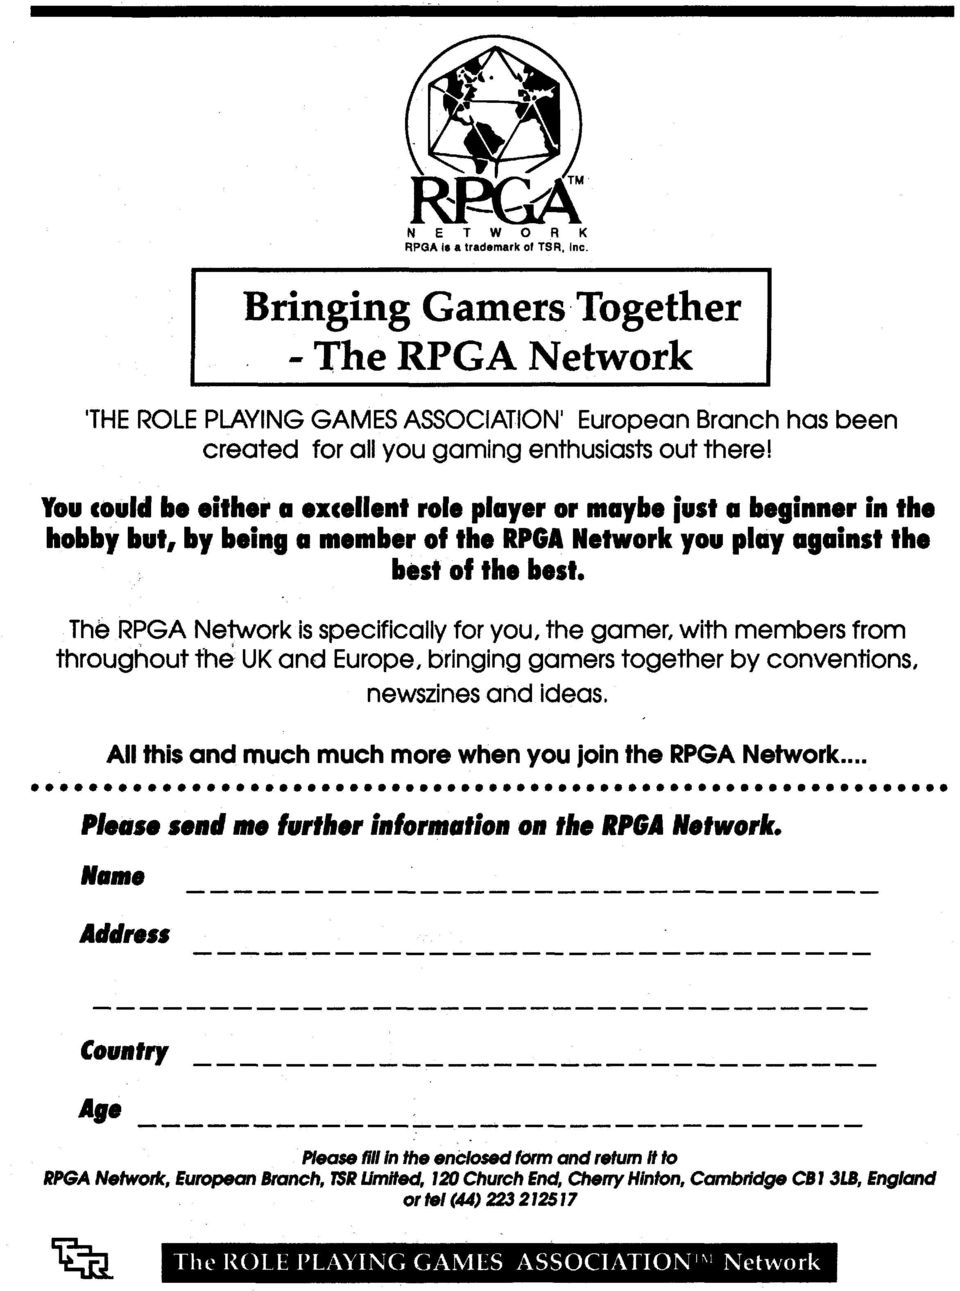 The RPGA Network is specifically for you, the gamer, with members from throughout th& UK and Europe, bringing gamers together by conventions, newszines and ideas, Piease send me